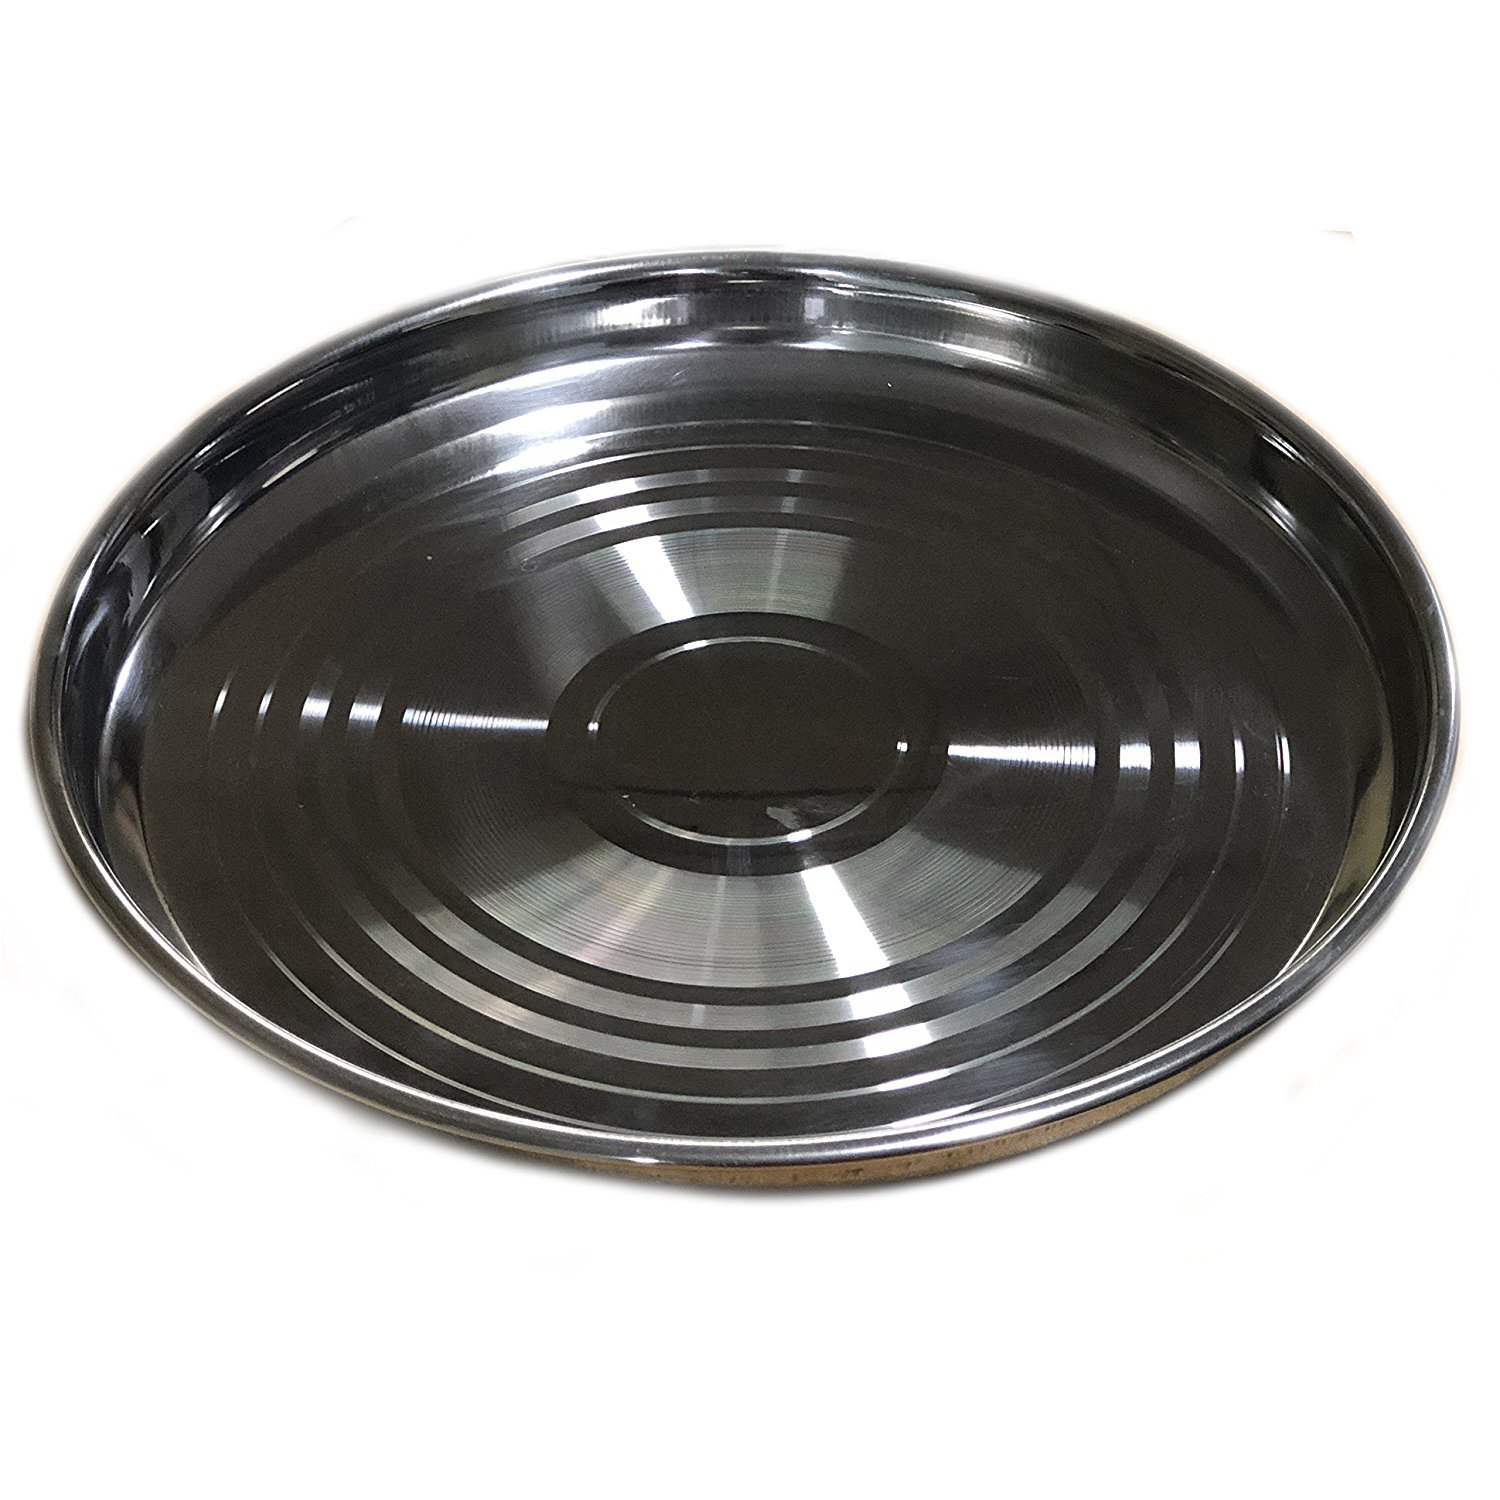 Khandekar (with device of K) Stainless Steel Round Strip Design Plates,Tableware Round Dish Plates For Dinner, Silver Color Size 11.5 X 11.5 Inch